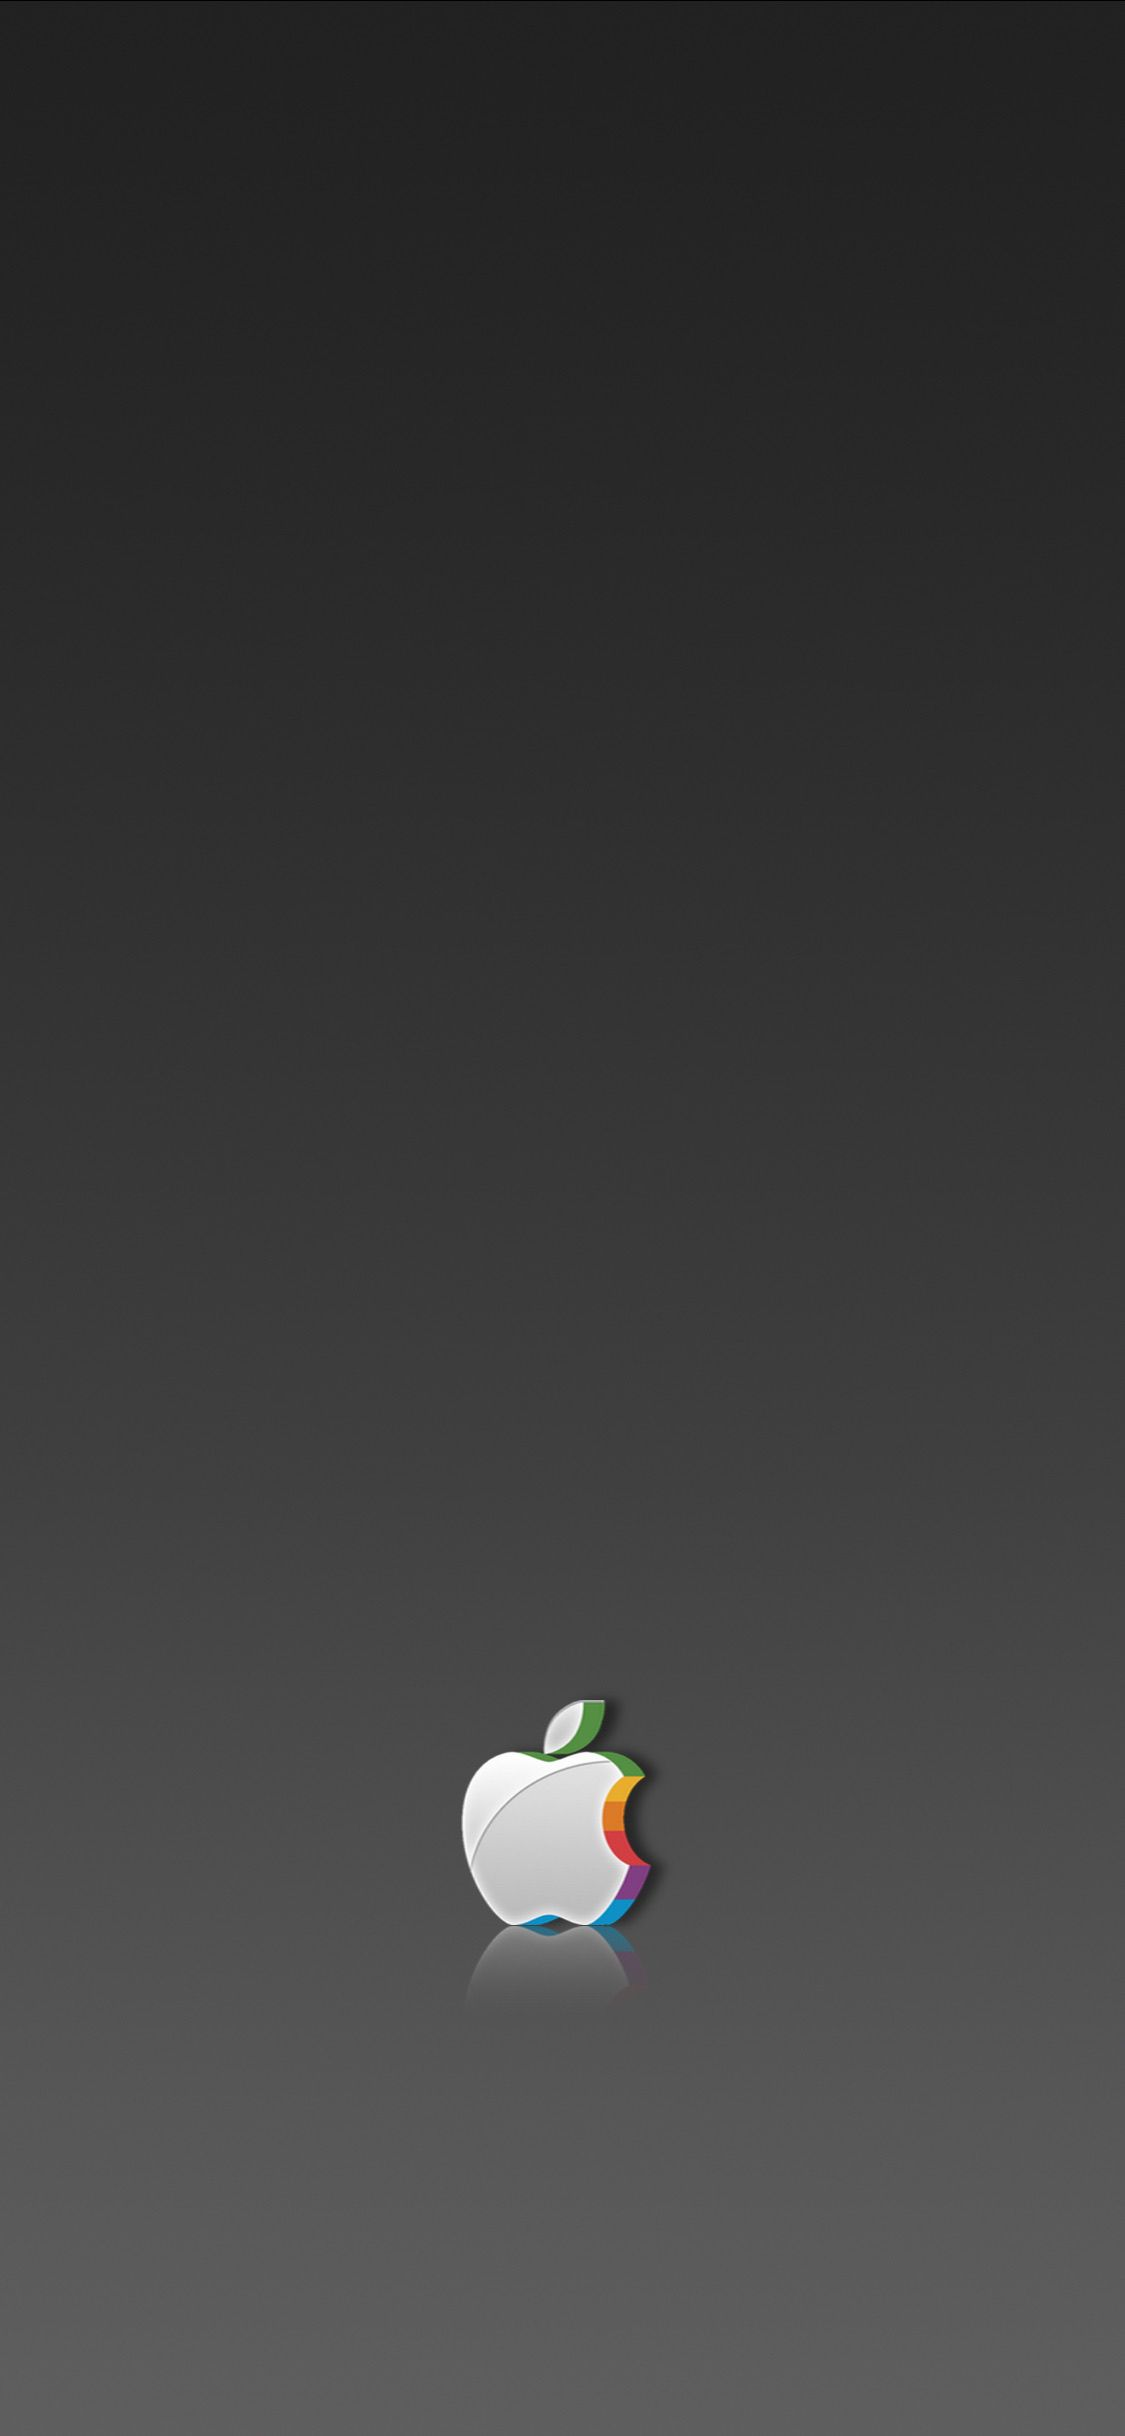 Pin By Beth Davis On Sick Wallpapers Apple Logo Wallpaper Iphone Apple Wallpaper Apple Wallpaper Iphone